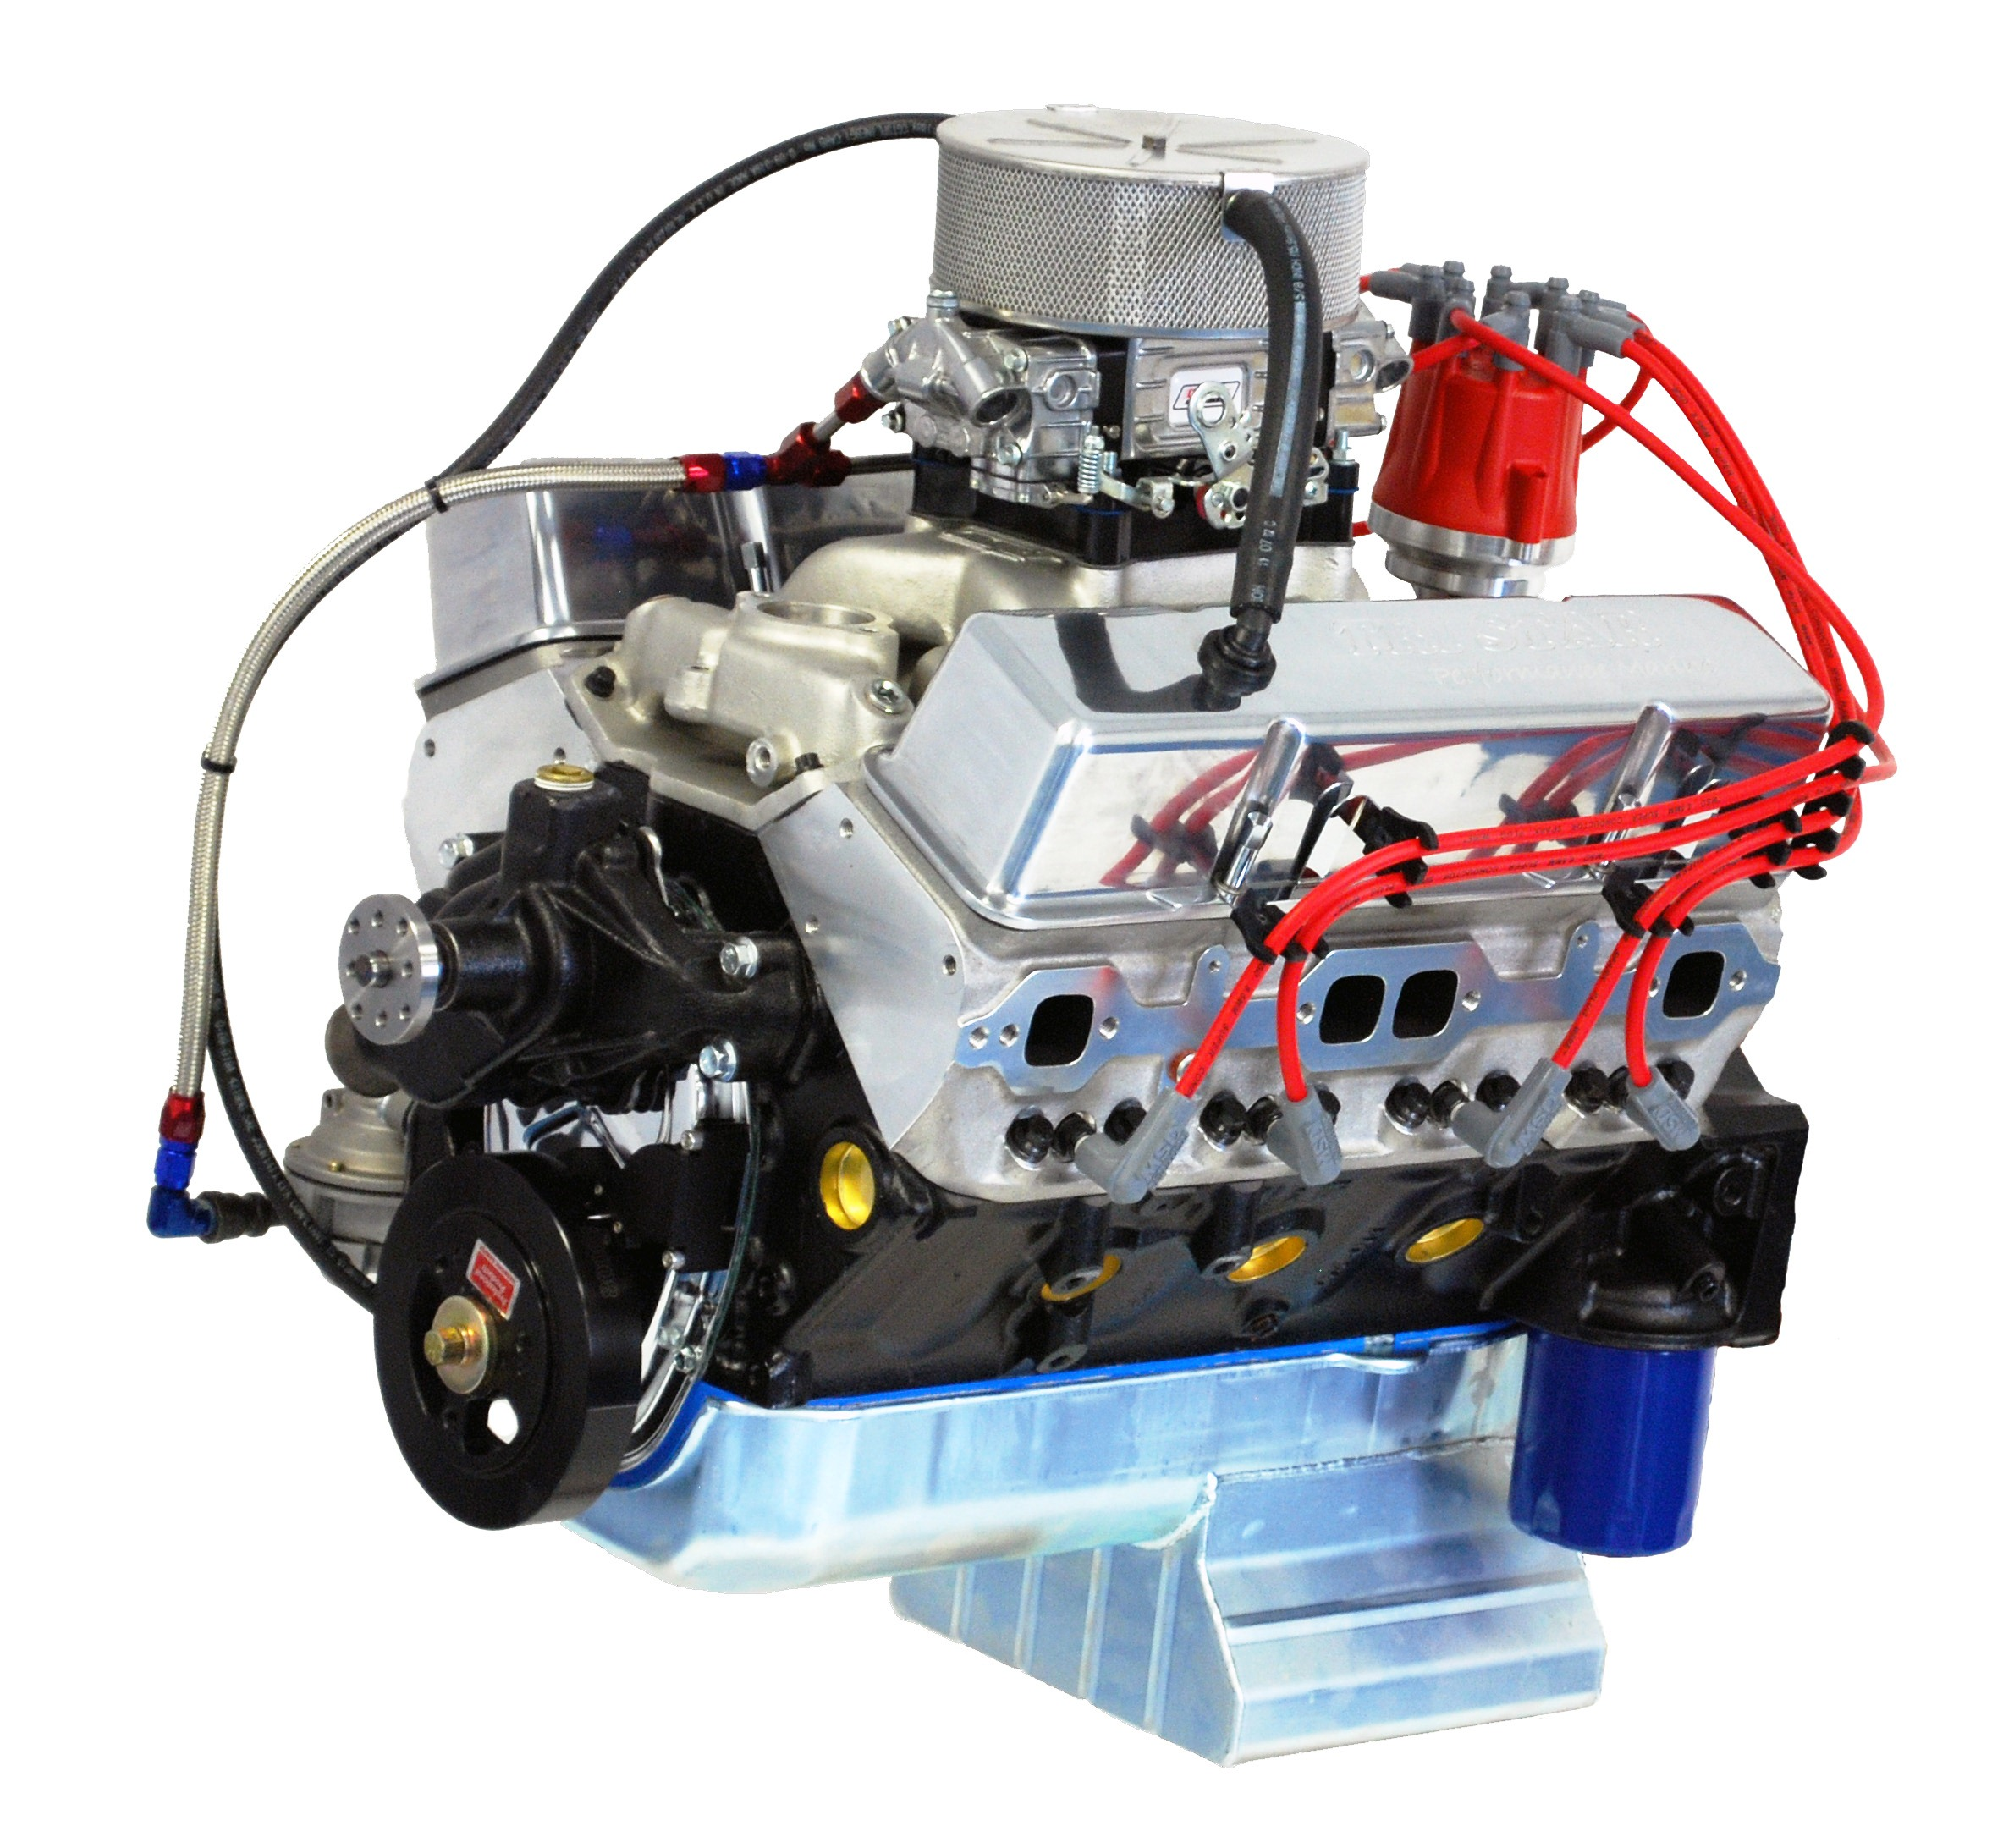 Tri Star - Value re-power option, covers GM and Ford OE replacement with core deposits.